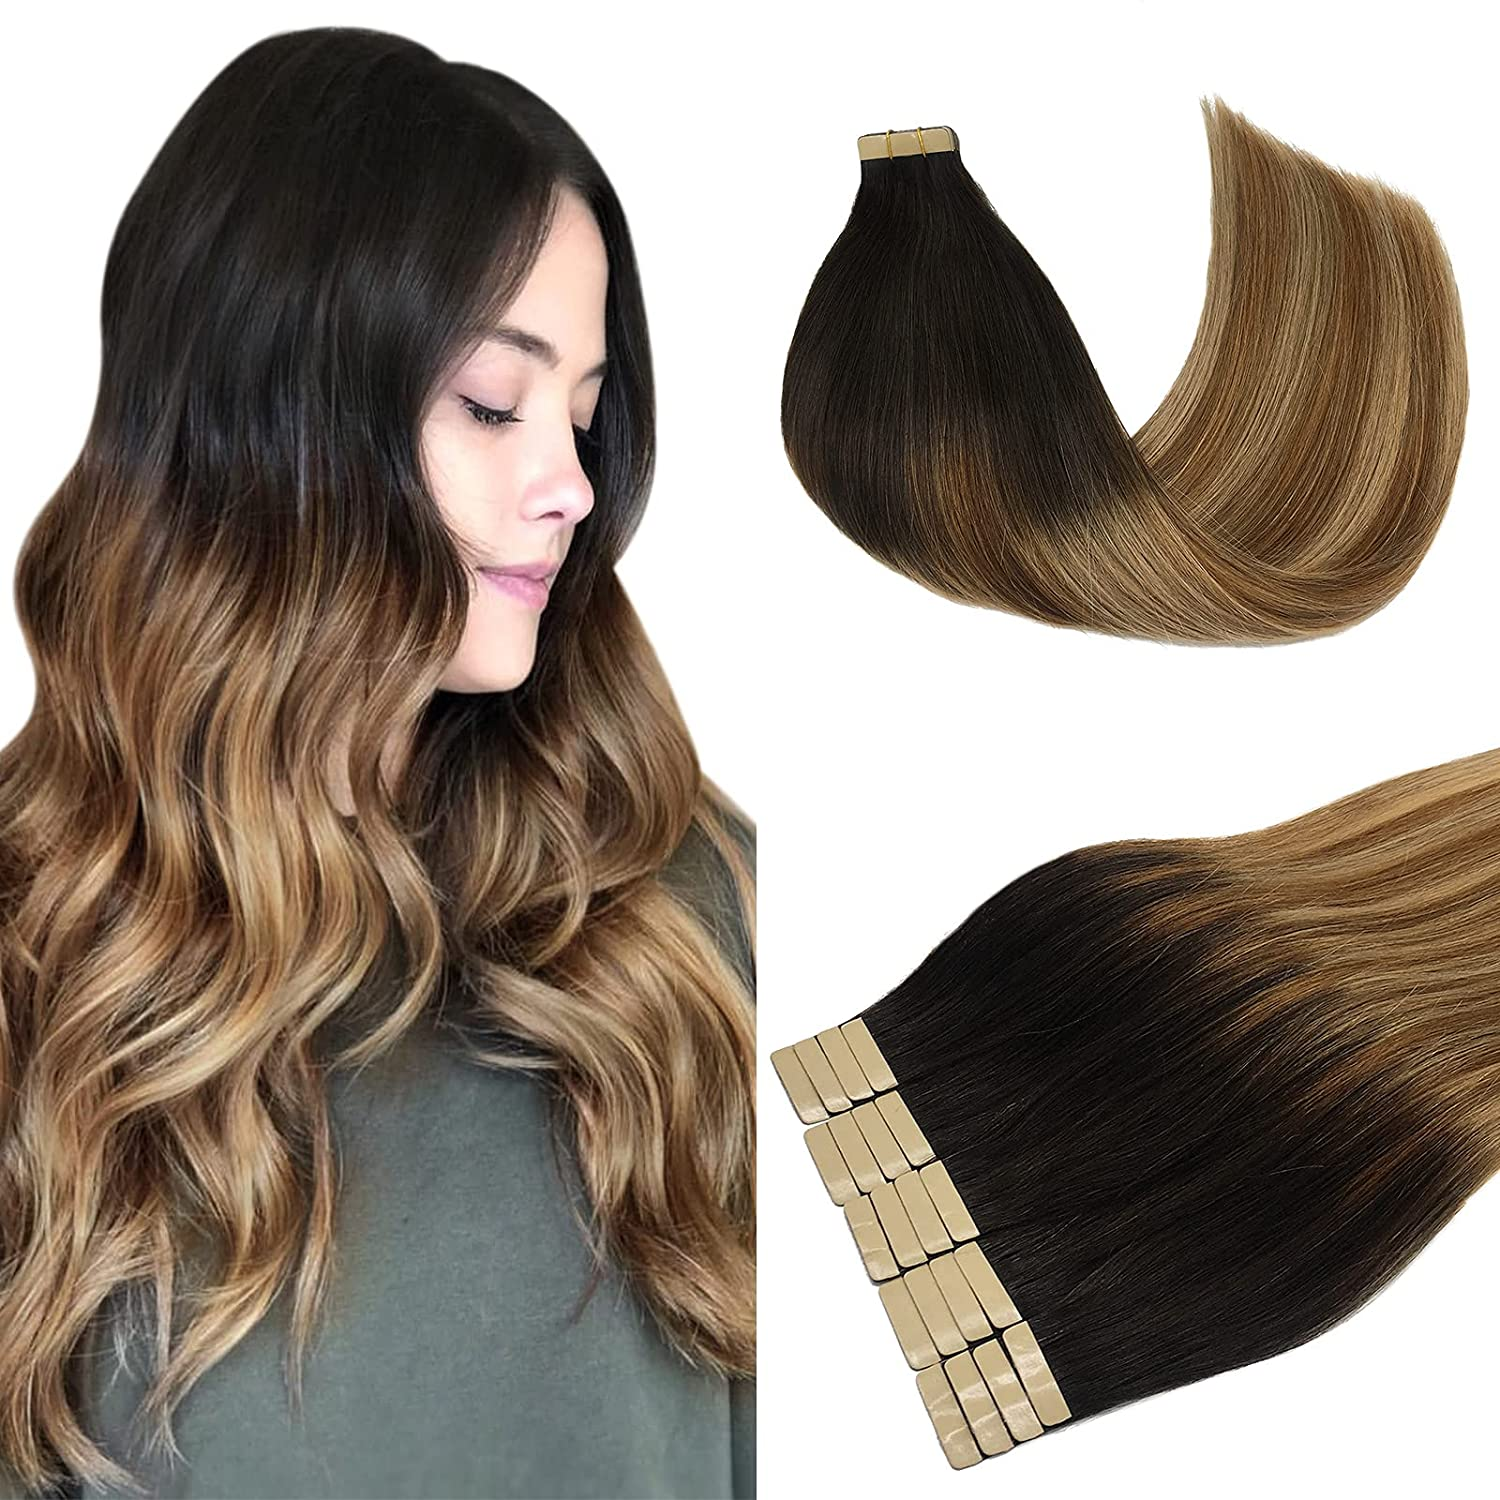 LAB·EH Hair Extensions Tape in Ombre Dark to Brown Chestnut Brow Many Popular products popular brands